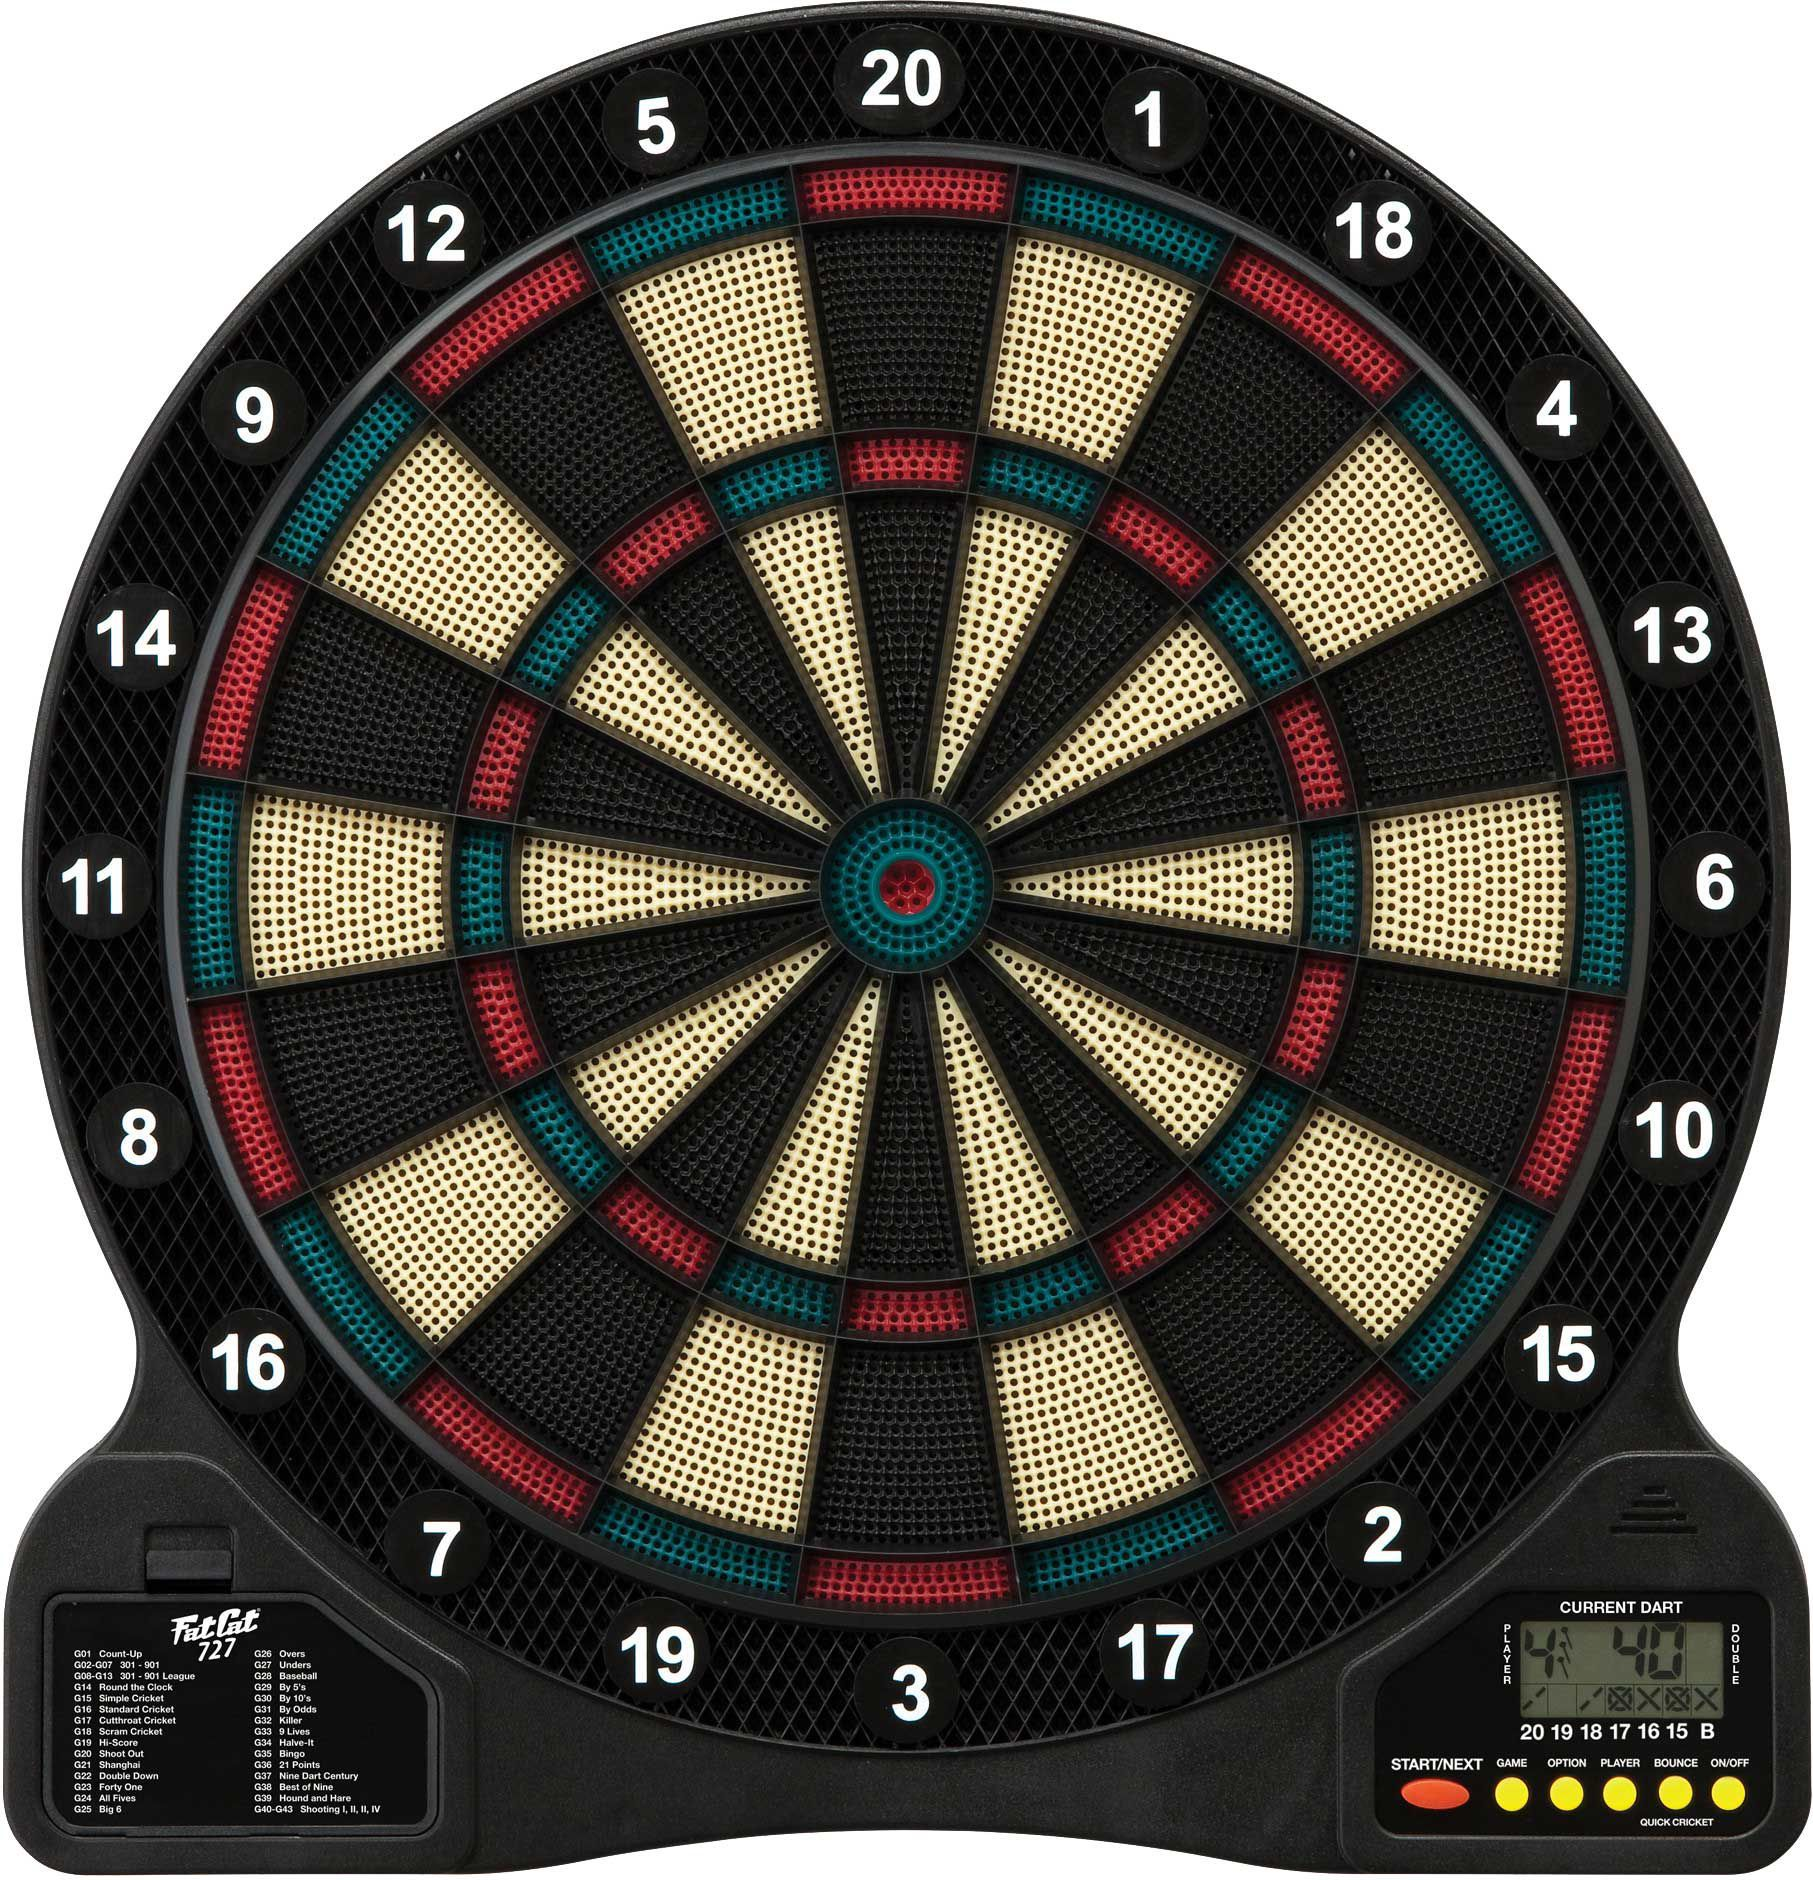 Section Class Productdescription Div Class Product Component P Let The Fat Cat 727 Electronic Dartboard Provide Years Of